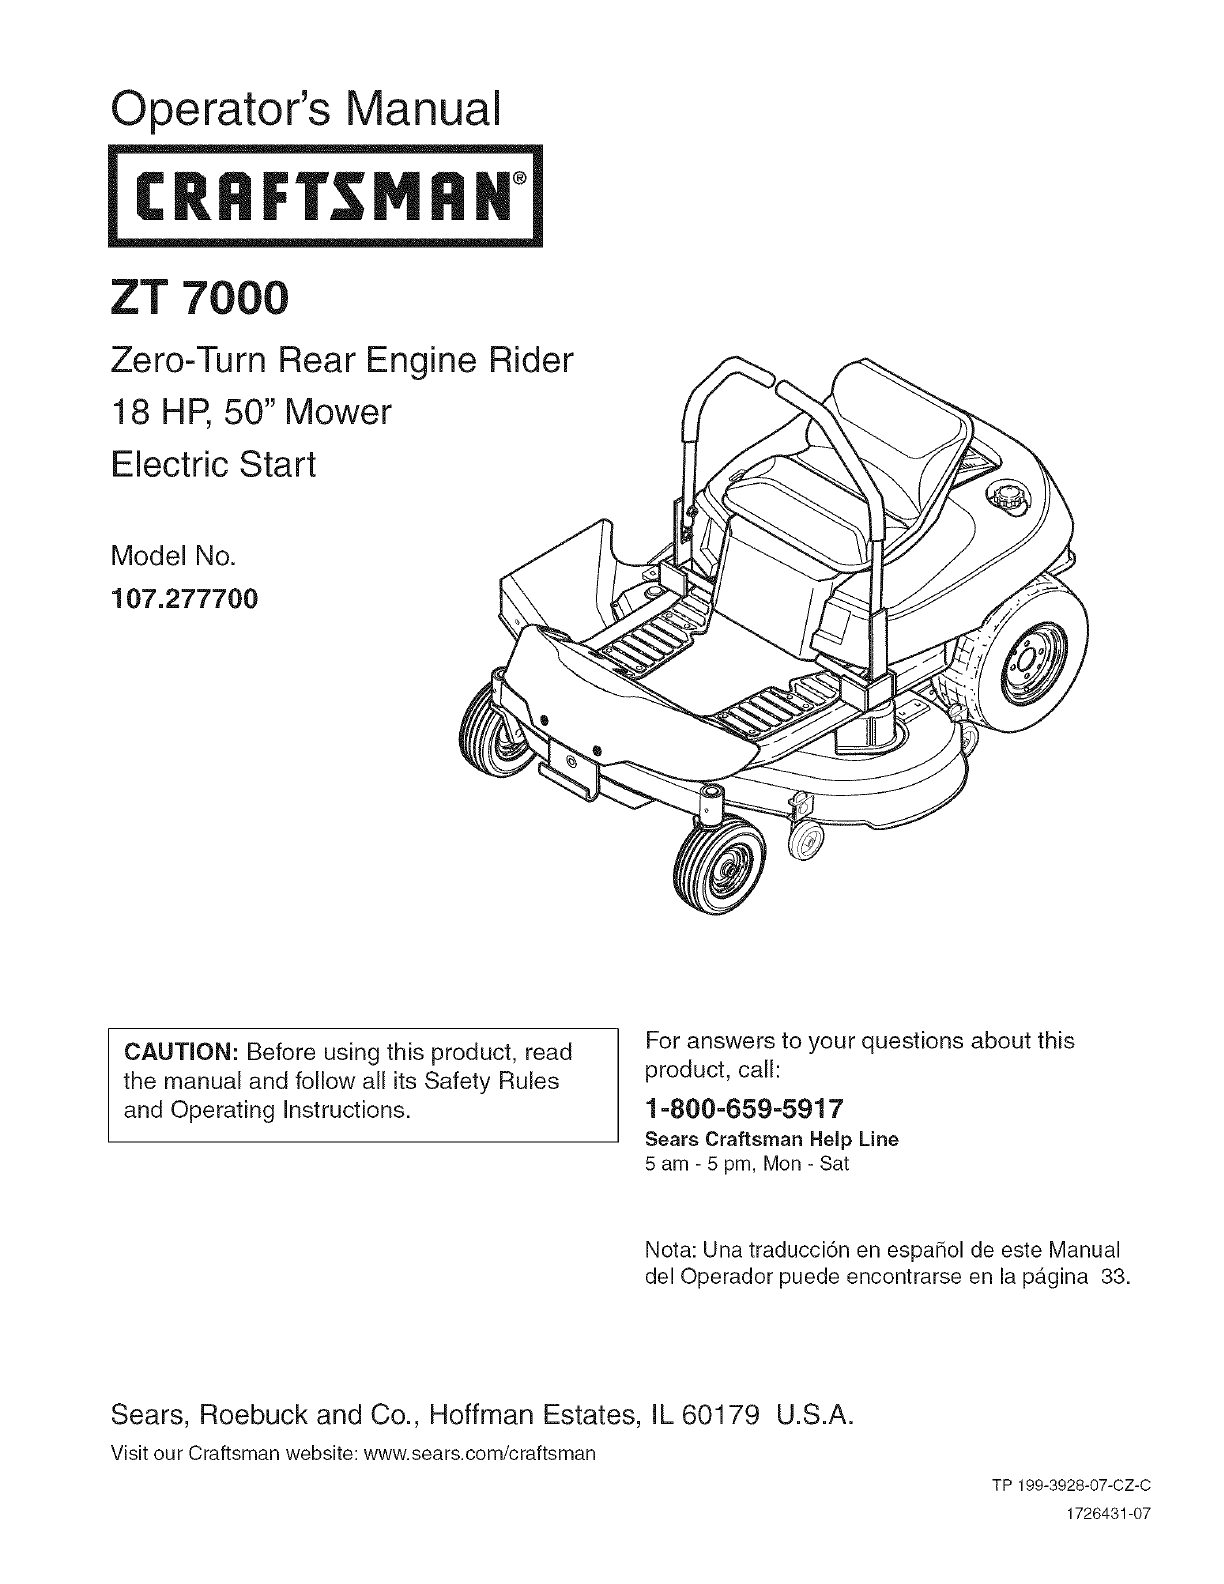 e8a839a6 2b52 4ef1 a868 cd853ae26c39 bg1 craftsman lawn mower 107 2777 user guide manualsonline com craftsman ztl 7000 wiring diagram at readyjetset.co